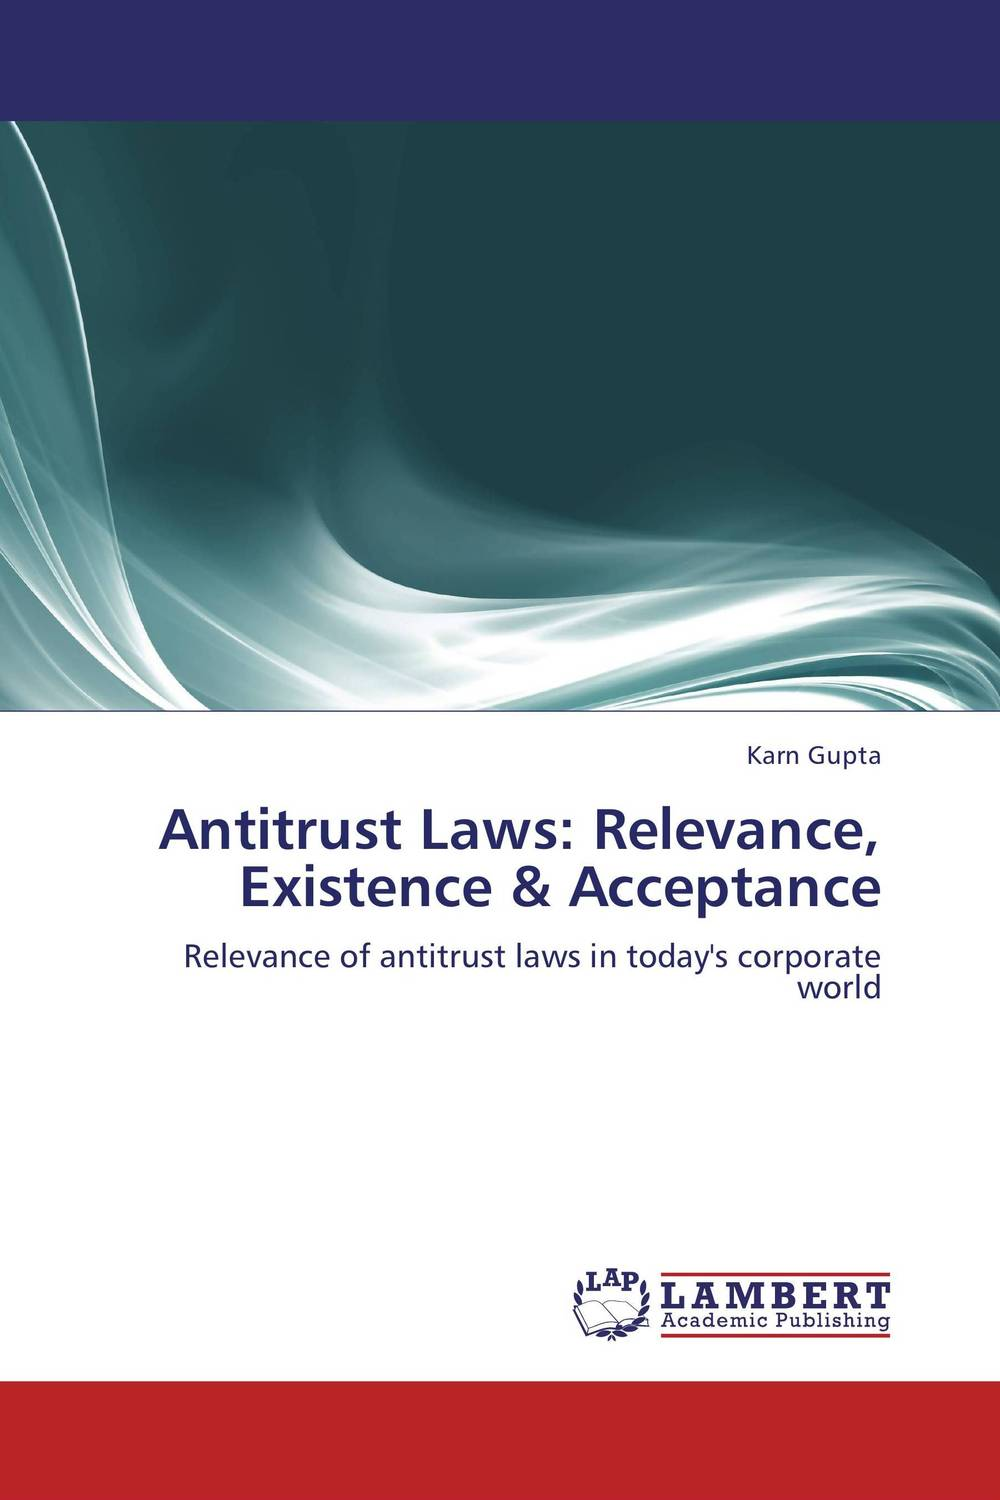 Antitrust Laws: Relevance, Existence & Acceptance elena fishtik sara laws are keeping silence during the war